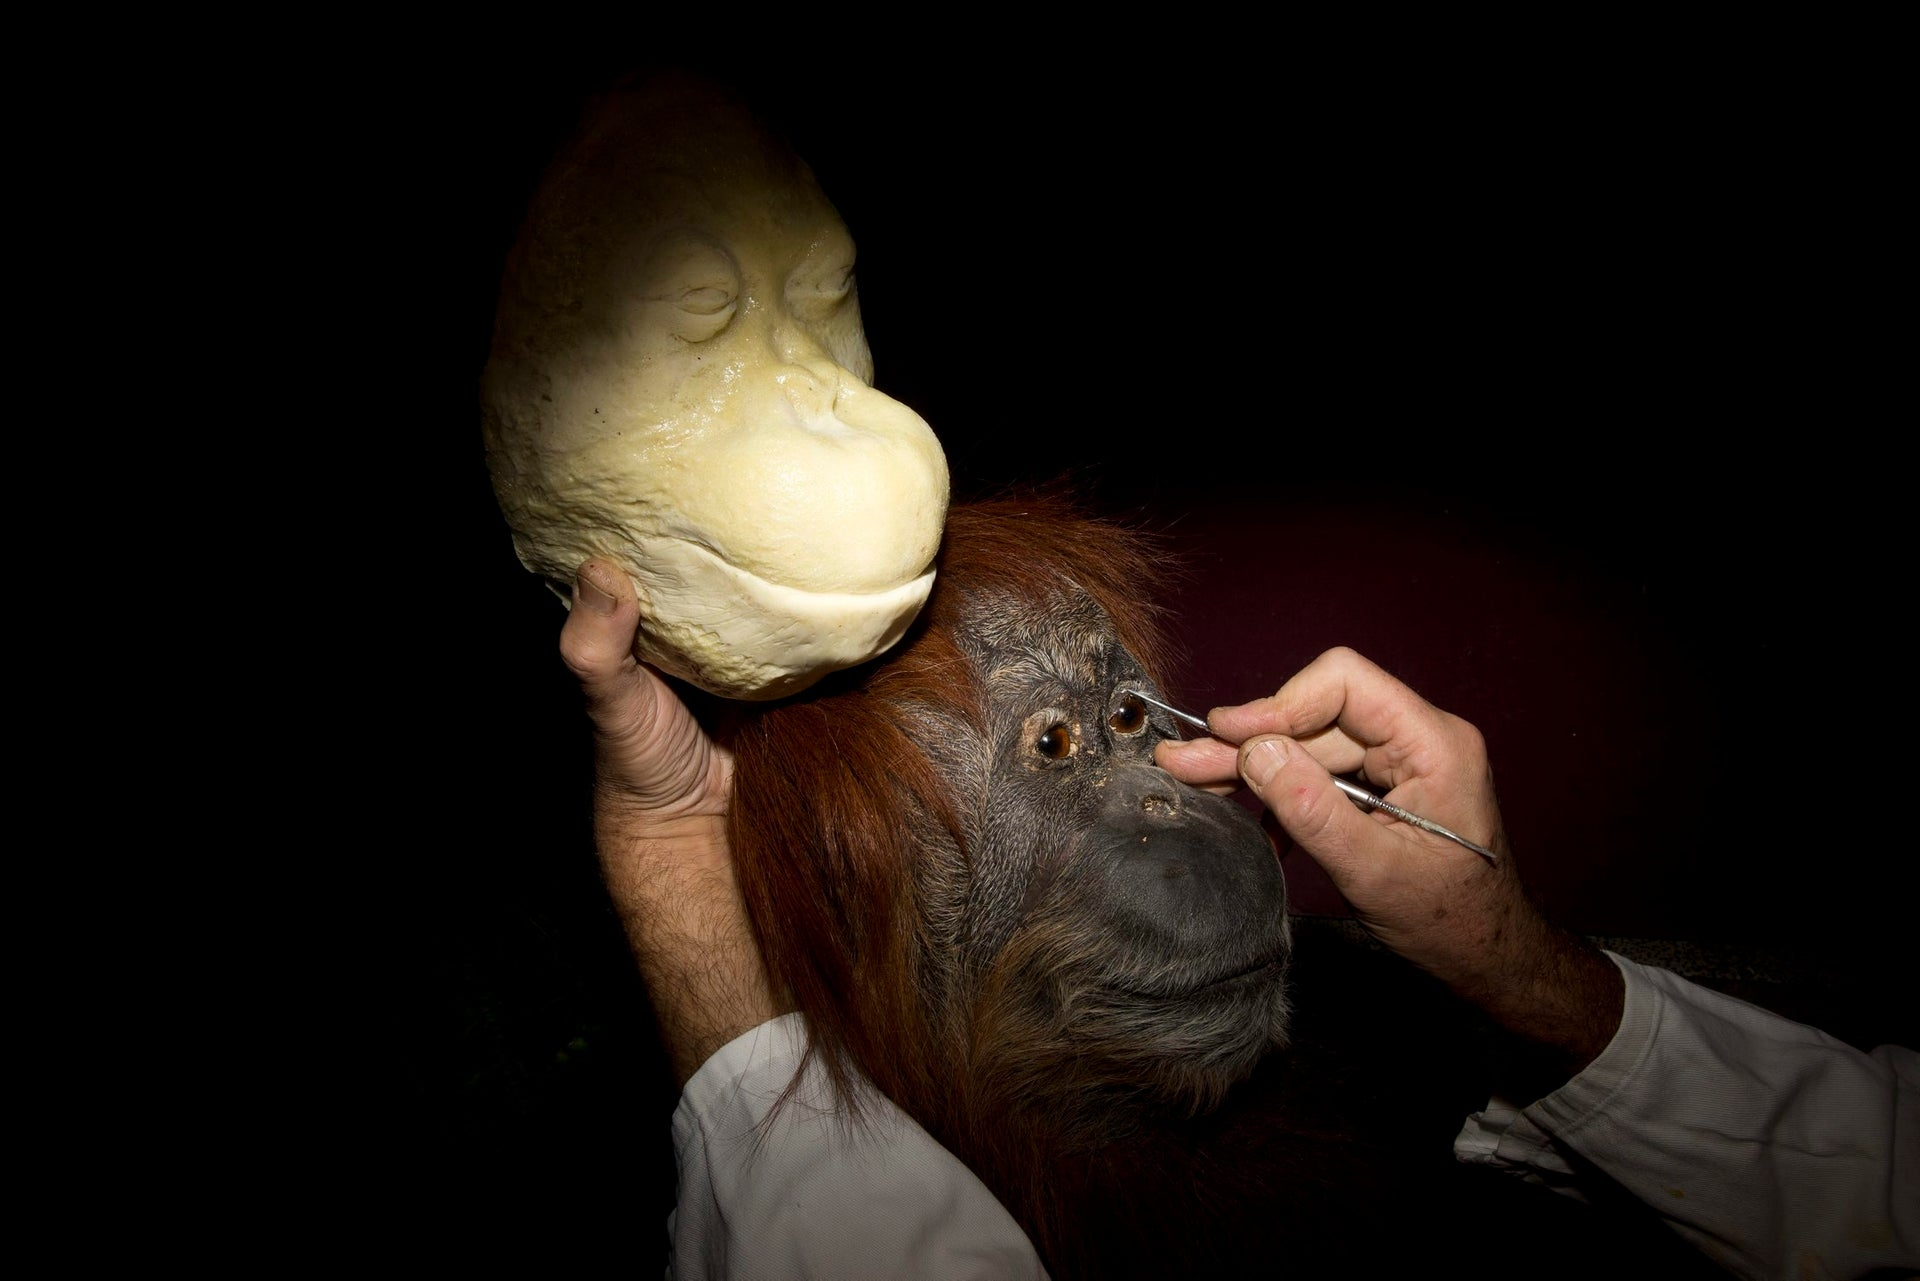 In this Sunday, Nov 5, 2017 photo, taxidermist Igor Gavrilov works on a stuffed orangutan to be displayed at the Steinhardt Museum of Natural History in Tel Aviv, Israel. (AP Photo/Oded Balilty)